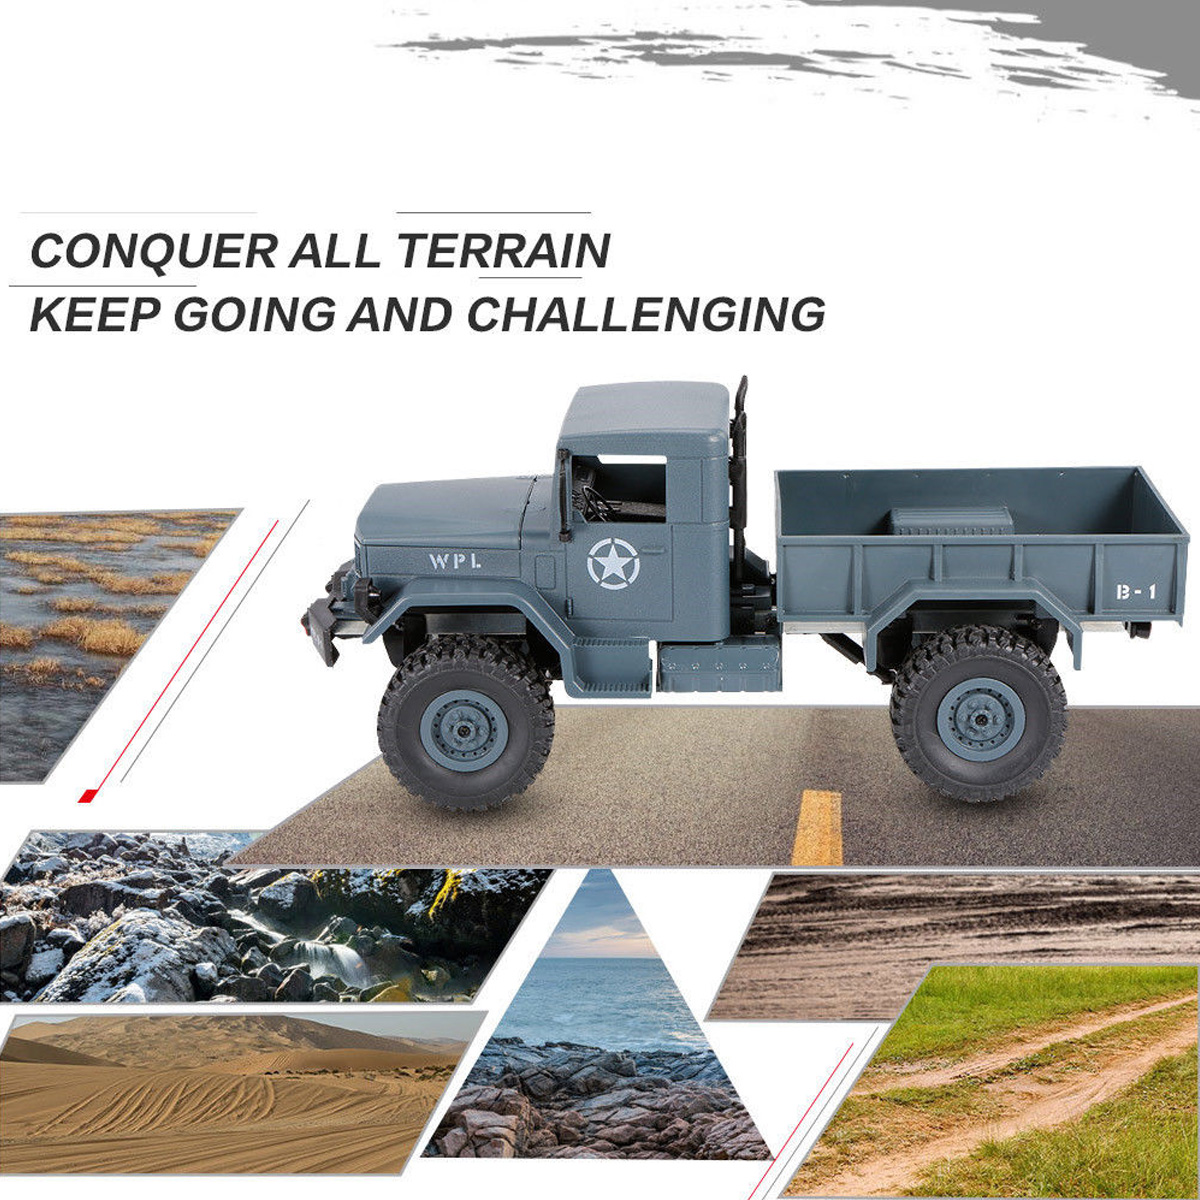 WPL B-1 1/16 2.4G 4WD Military Truck Four-wheel Drives Off-road Climbing Car Model 1:16 Remote Control Cars Boys Top Toys sognare wall shower faucets with hand shower head chrome polished double handle bathroom shower faucet set bath faucet tap d5206